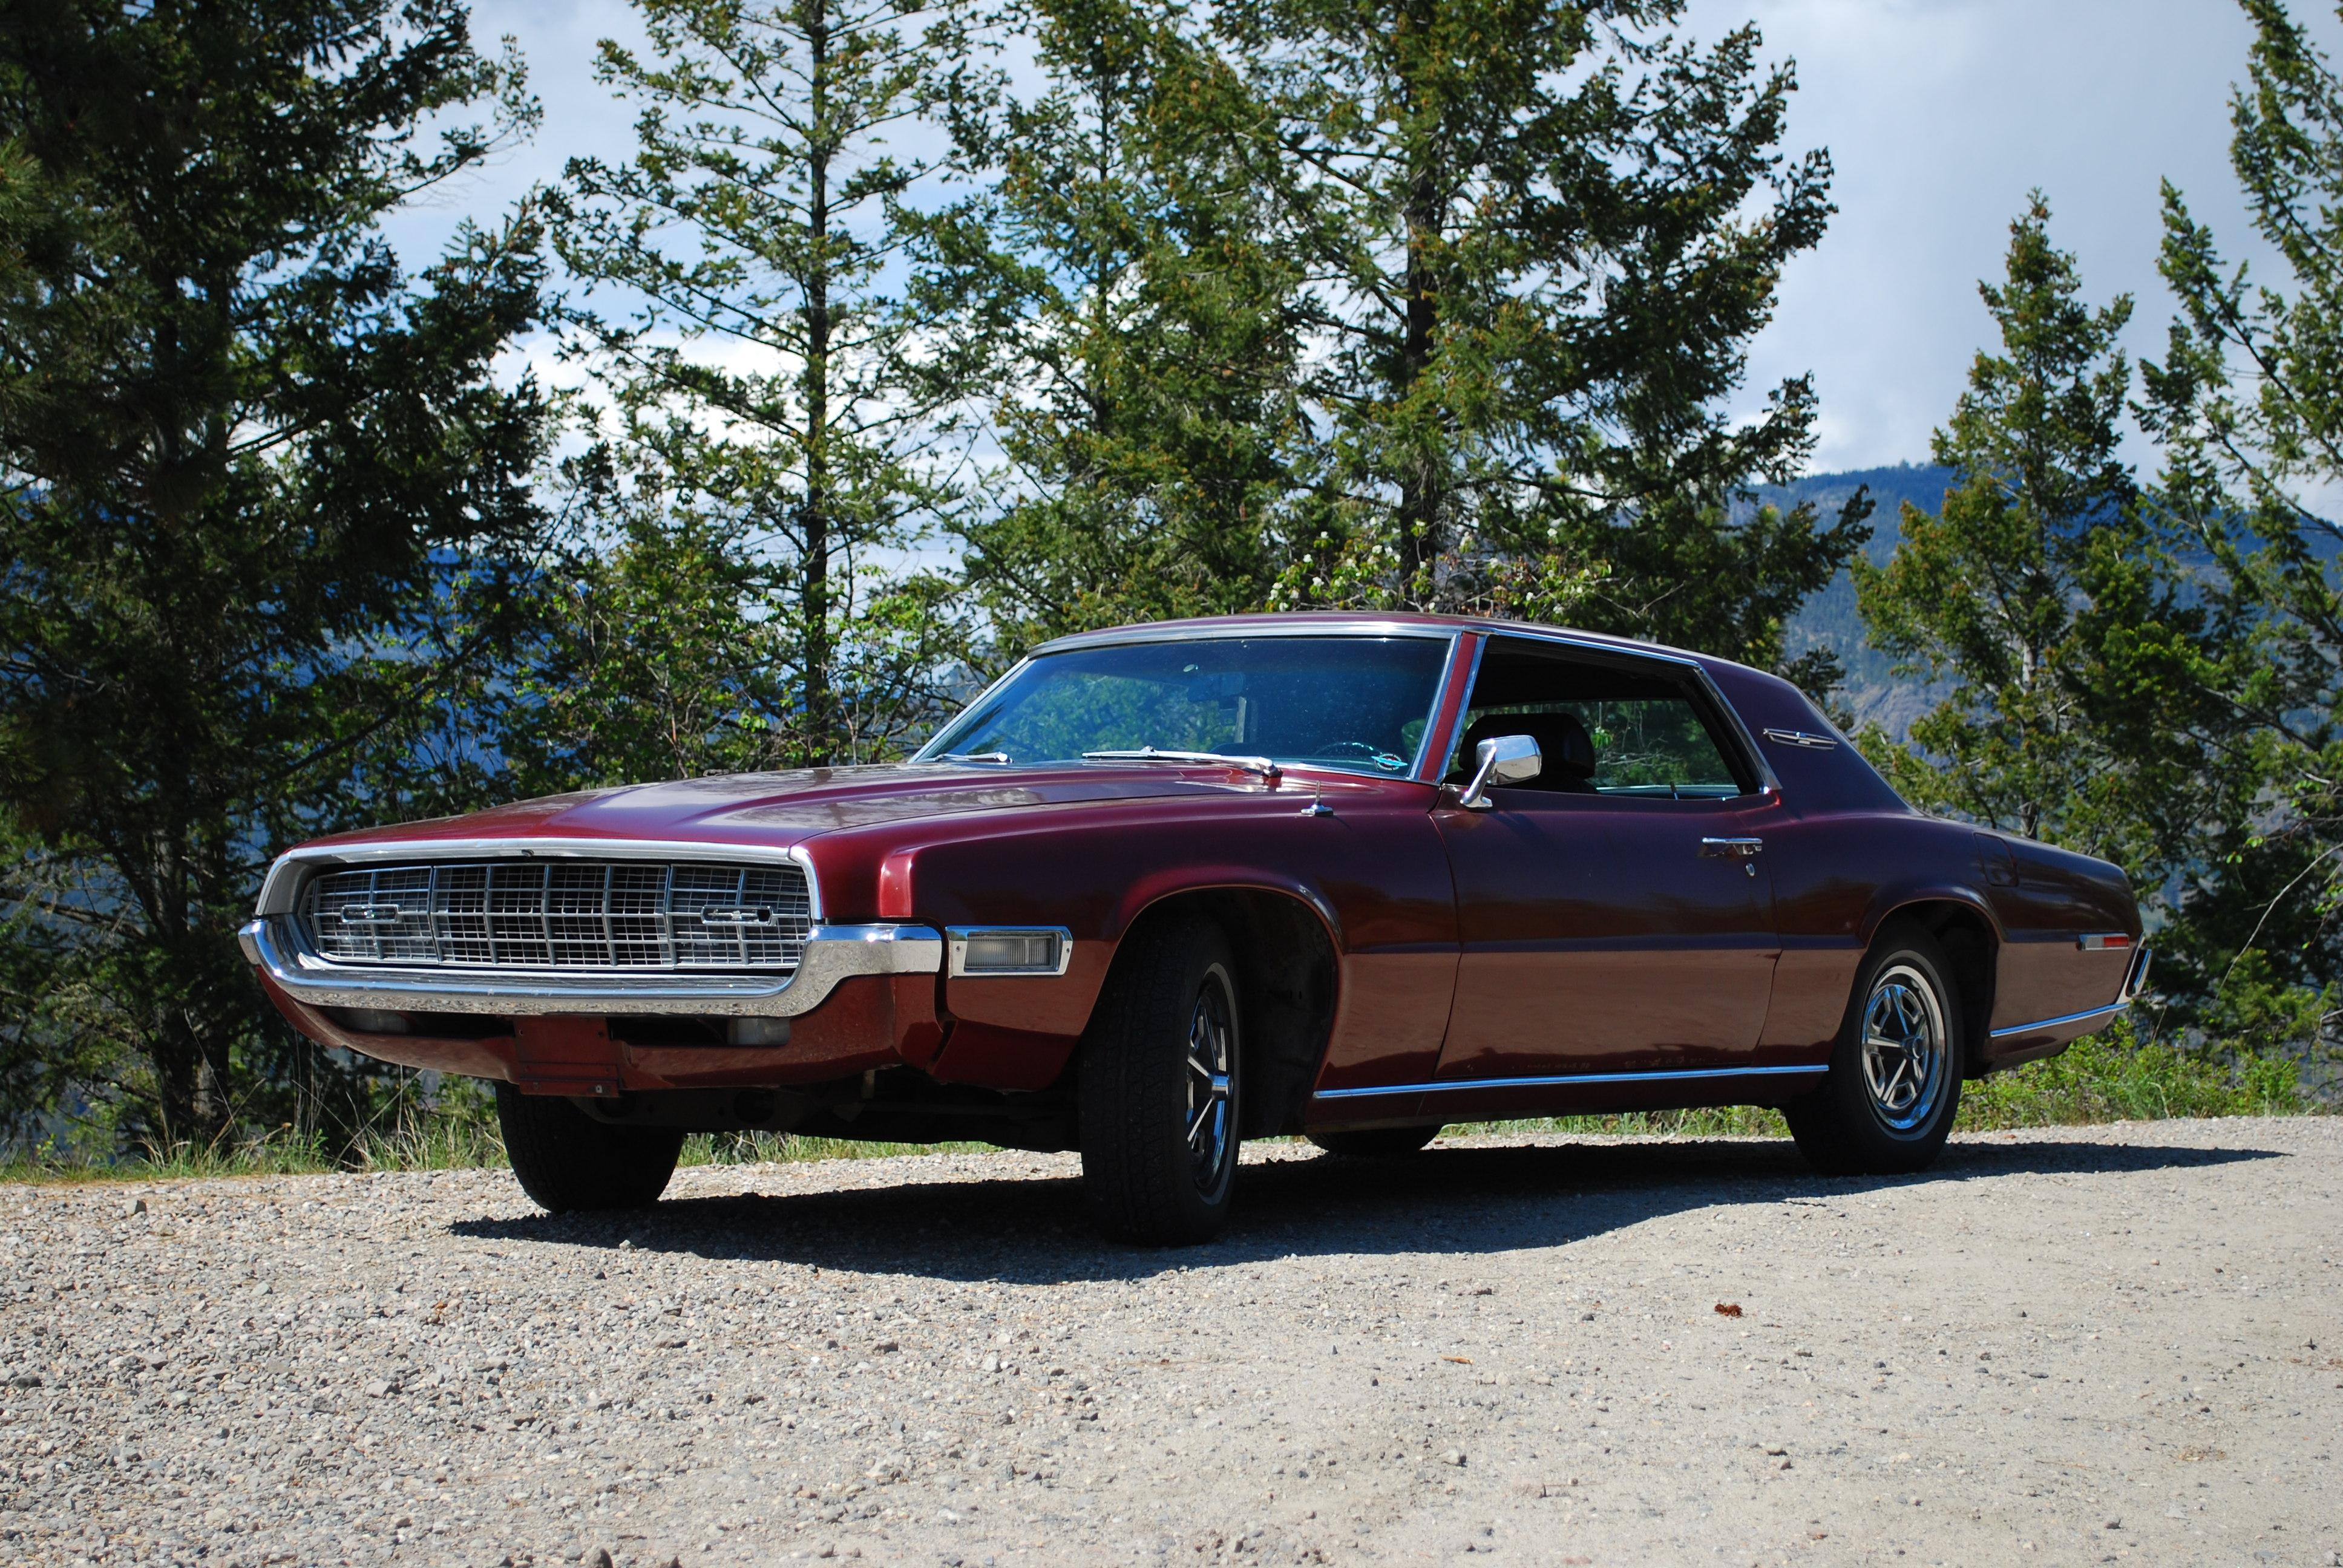 gnu 42 1968 ford thunderbird s photo gallery at cardomain rh cardomain com 1966 Thunderbird 1977 Thunderbird